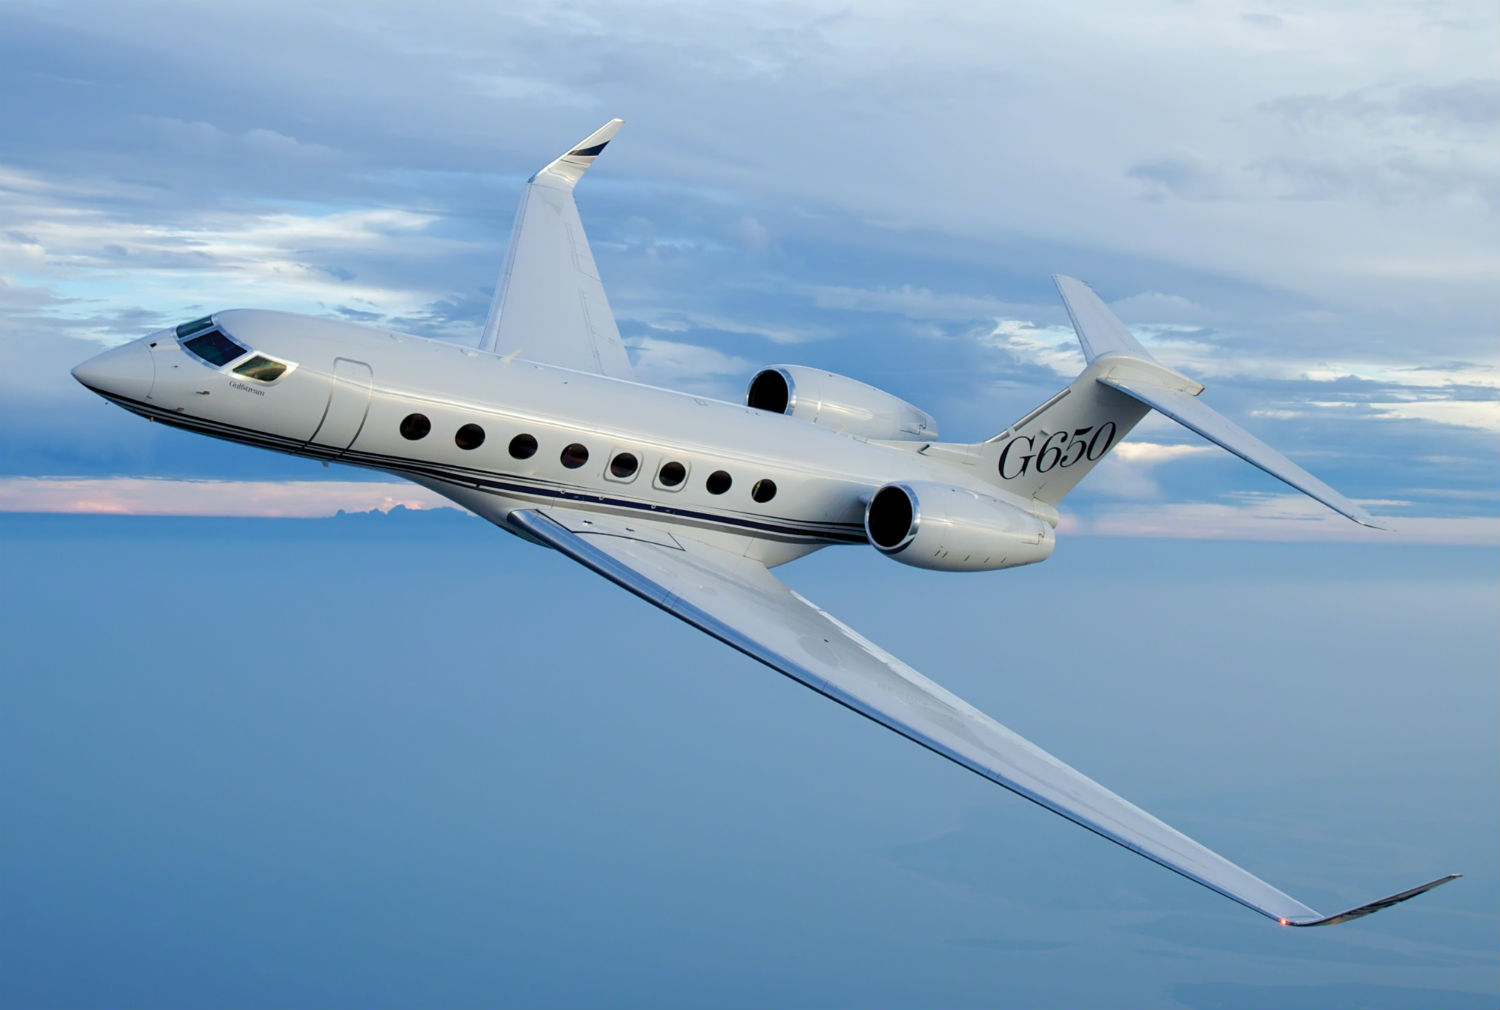 G650 in flight.